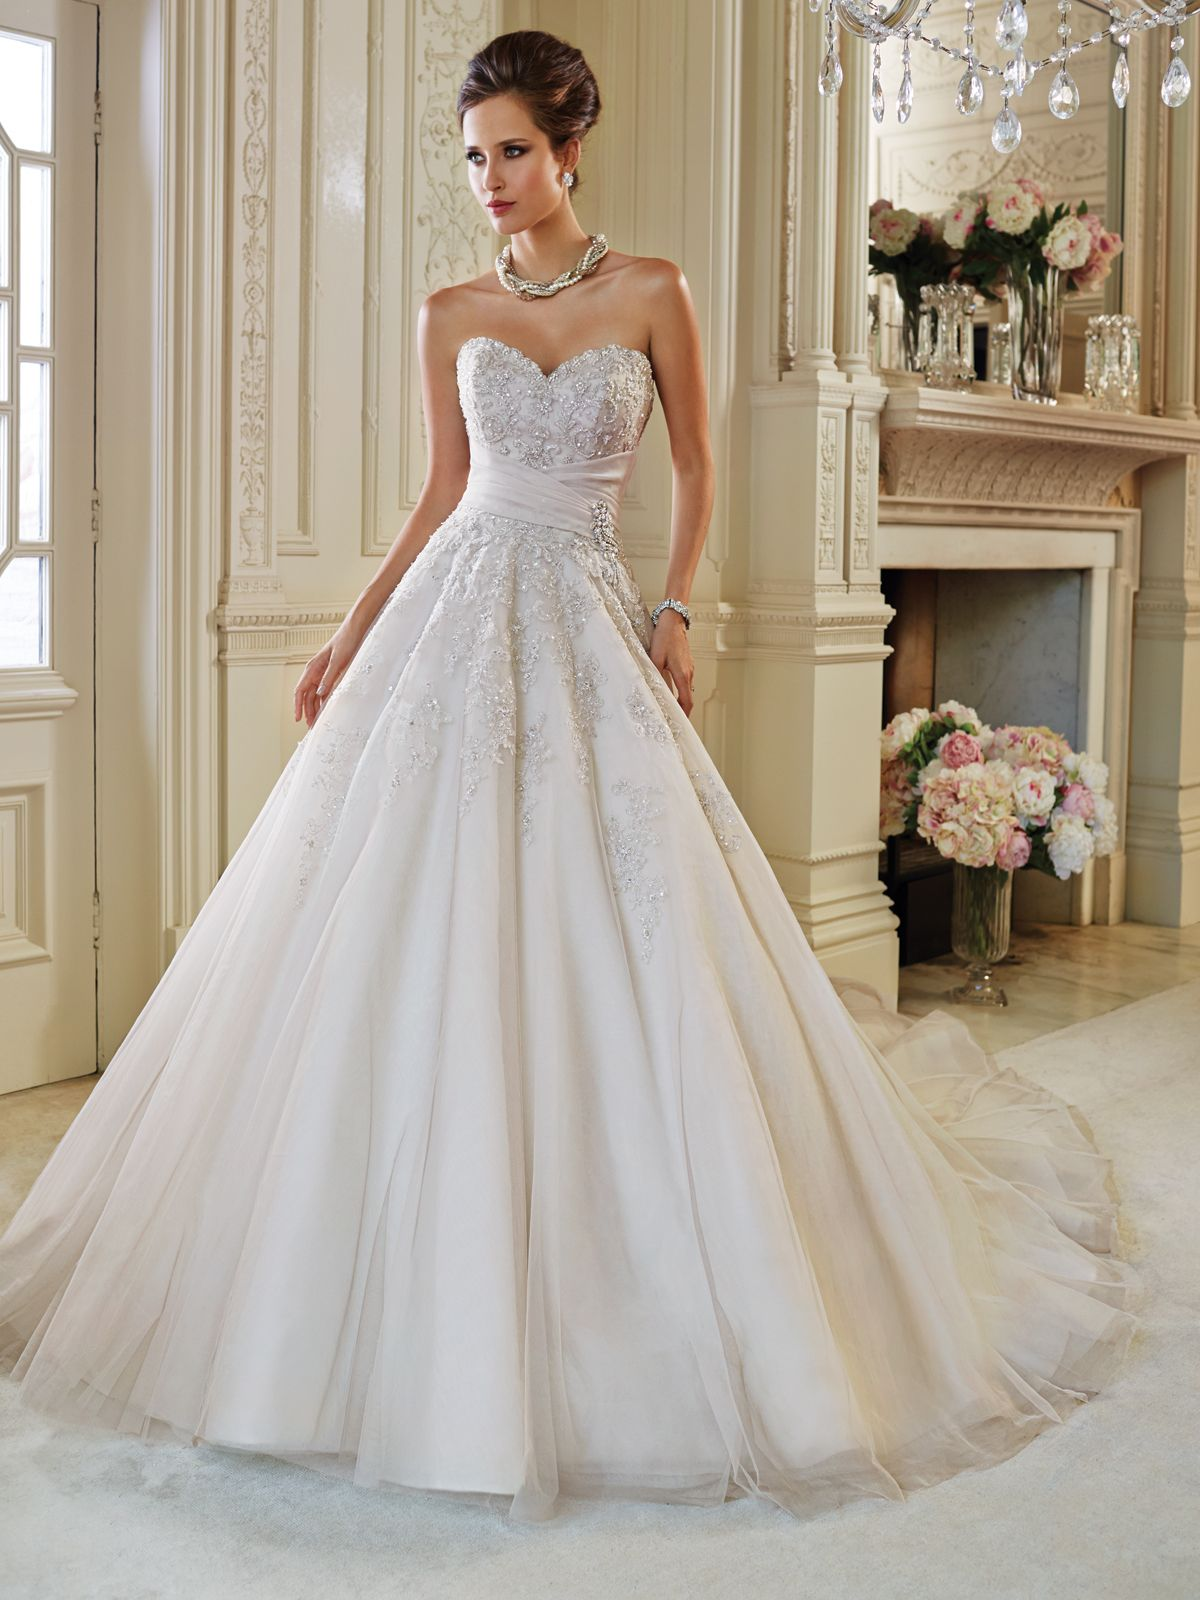 """If you're shopping for theperfect wedding dress and are having a tough time narrowing down your choices, here are our picks of the 25 stunning wedding dresses that will make you say, """"I wish I wore that on my wedding day!"""" In Living Color:Pastel hues of pink, blue, almond and mocha – oh my! Colored …"""